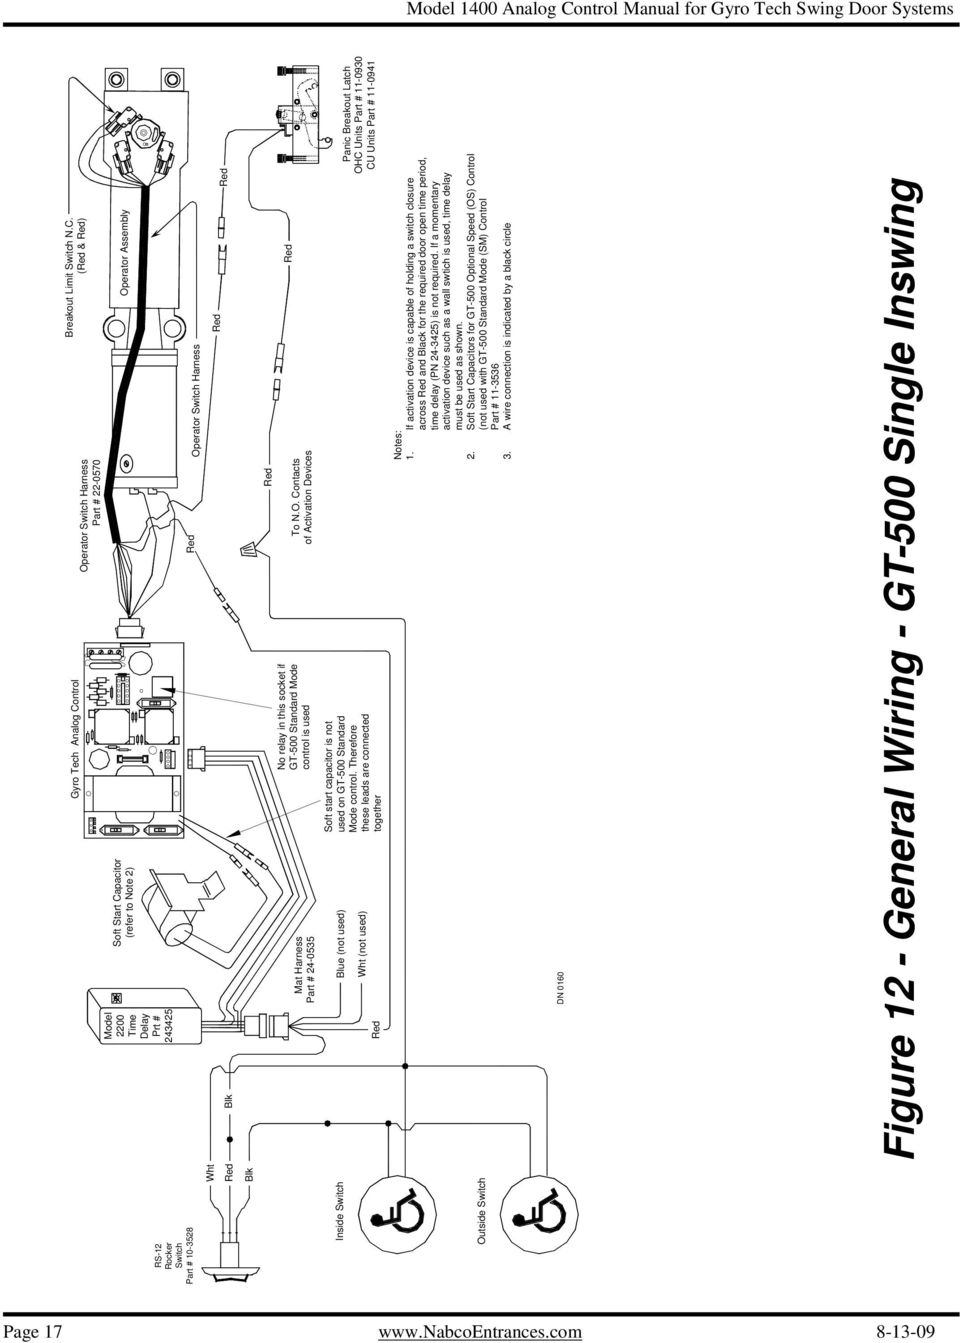 Analog Control Wiring Adjustment Manual For Gyro Tech Swing Door 70 5600 Car Wire Harness Diagram Therefore These Leads Are Connected Together Panic Breakout Latch Ohc Units Part 11 0930